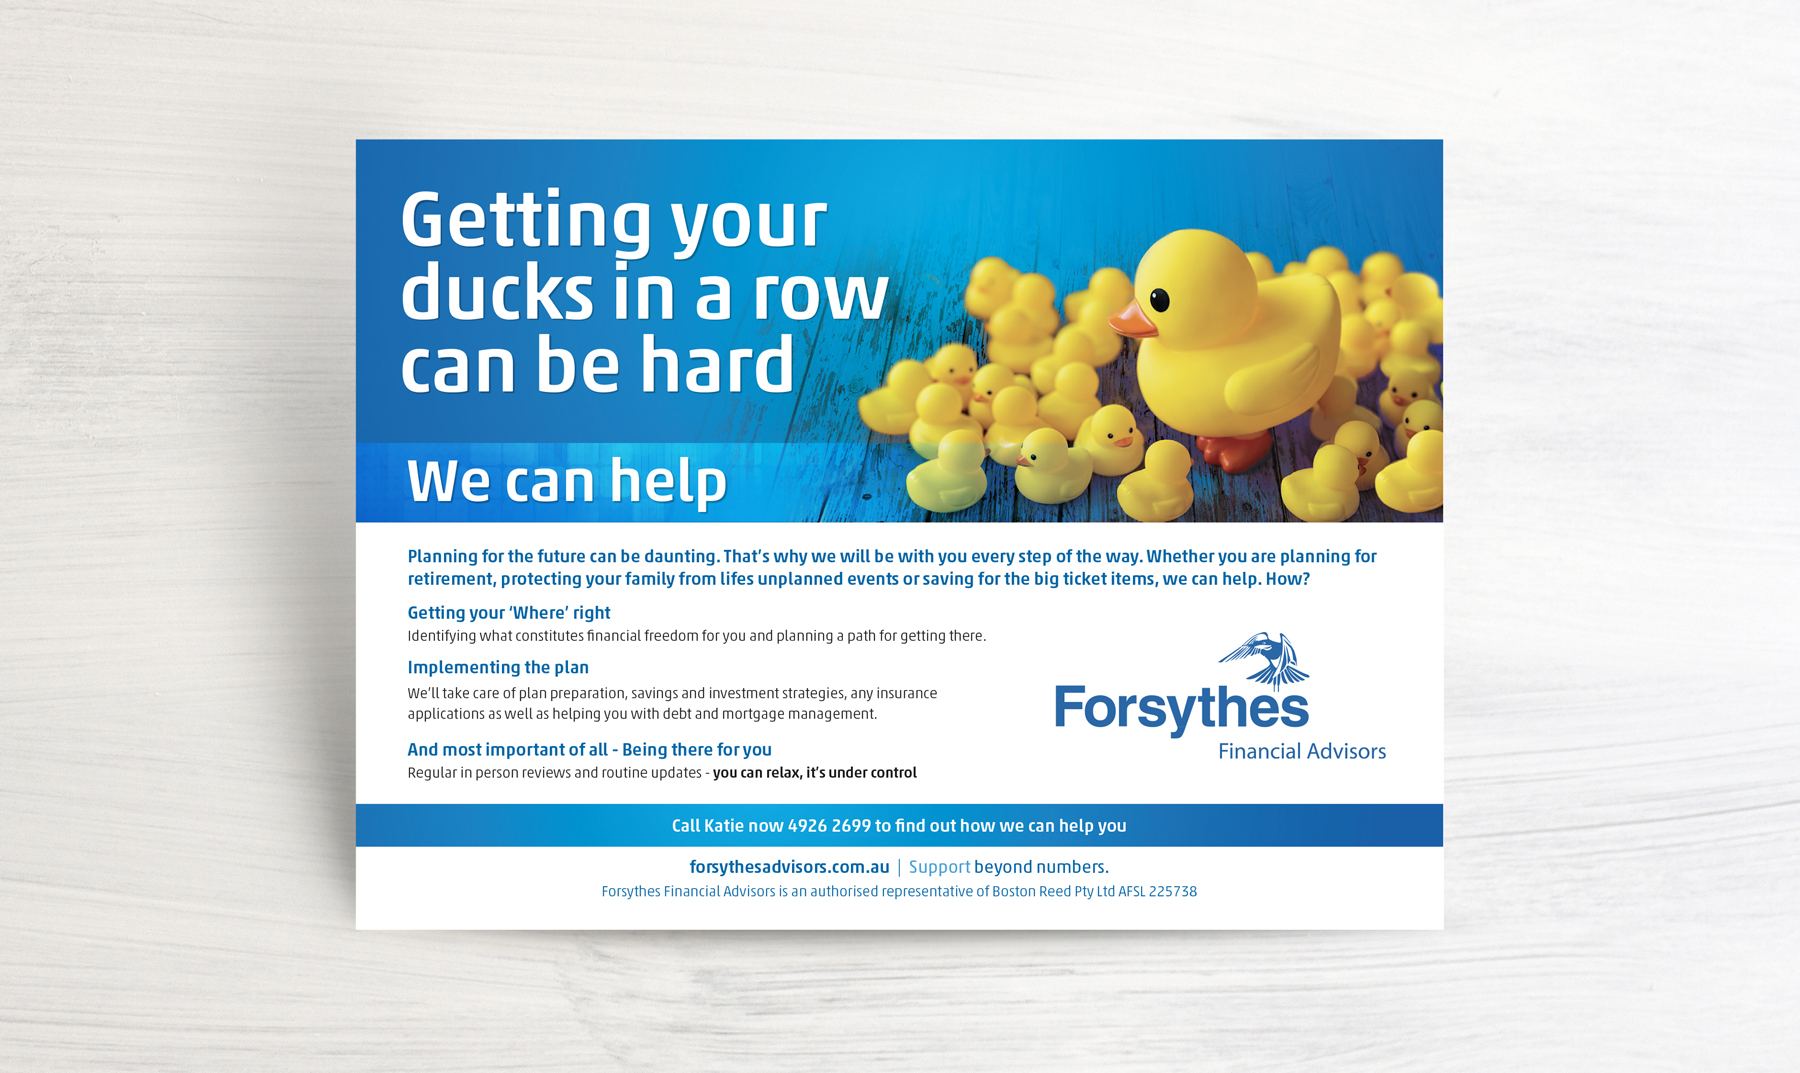 Forsythes Press Advertisement Exceeding Your Expectation